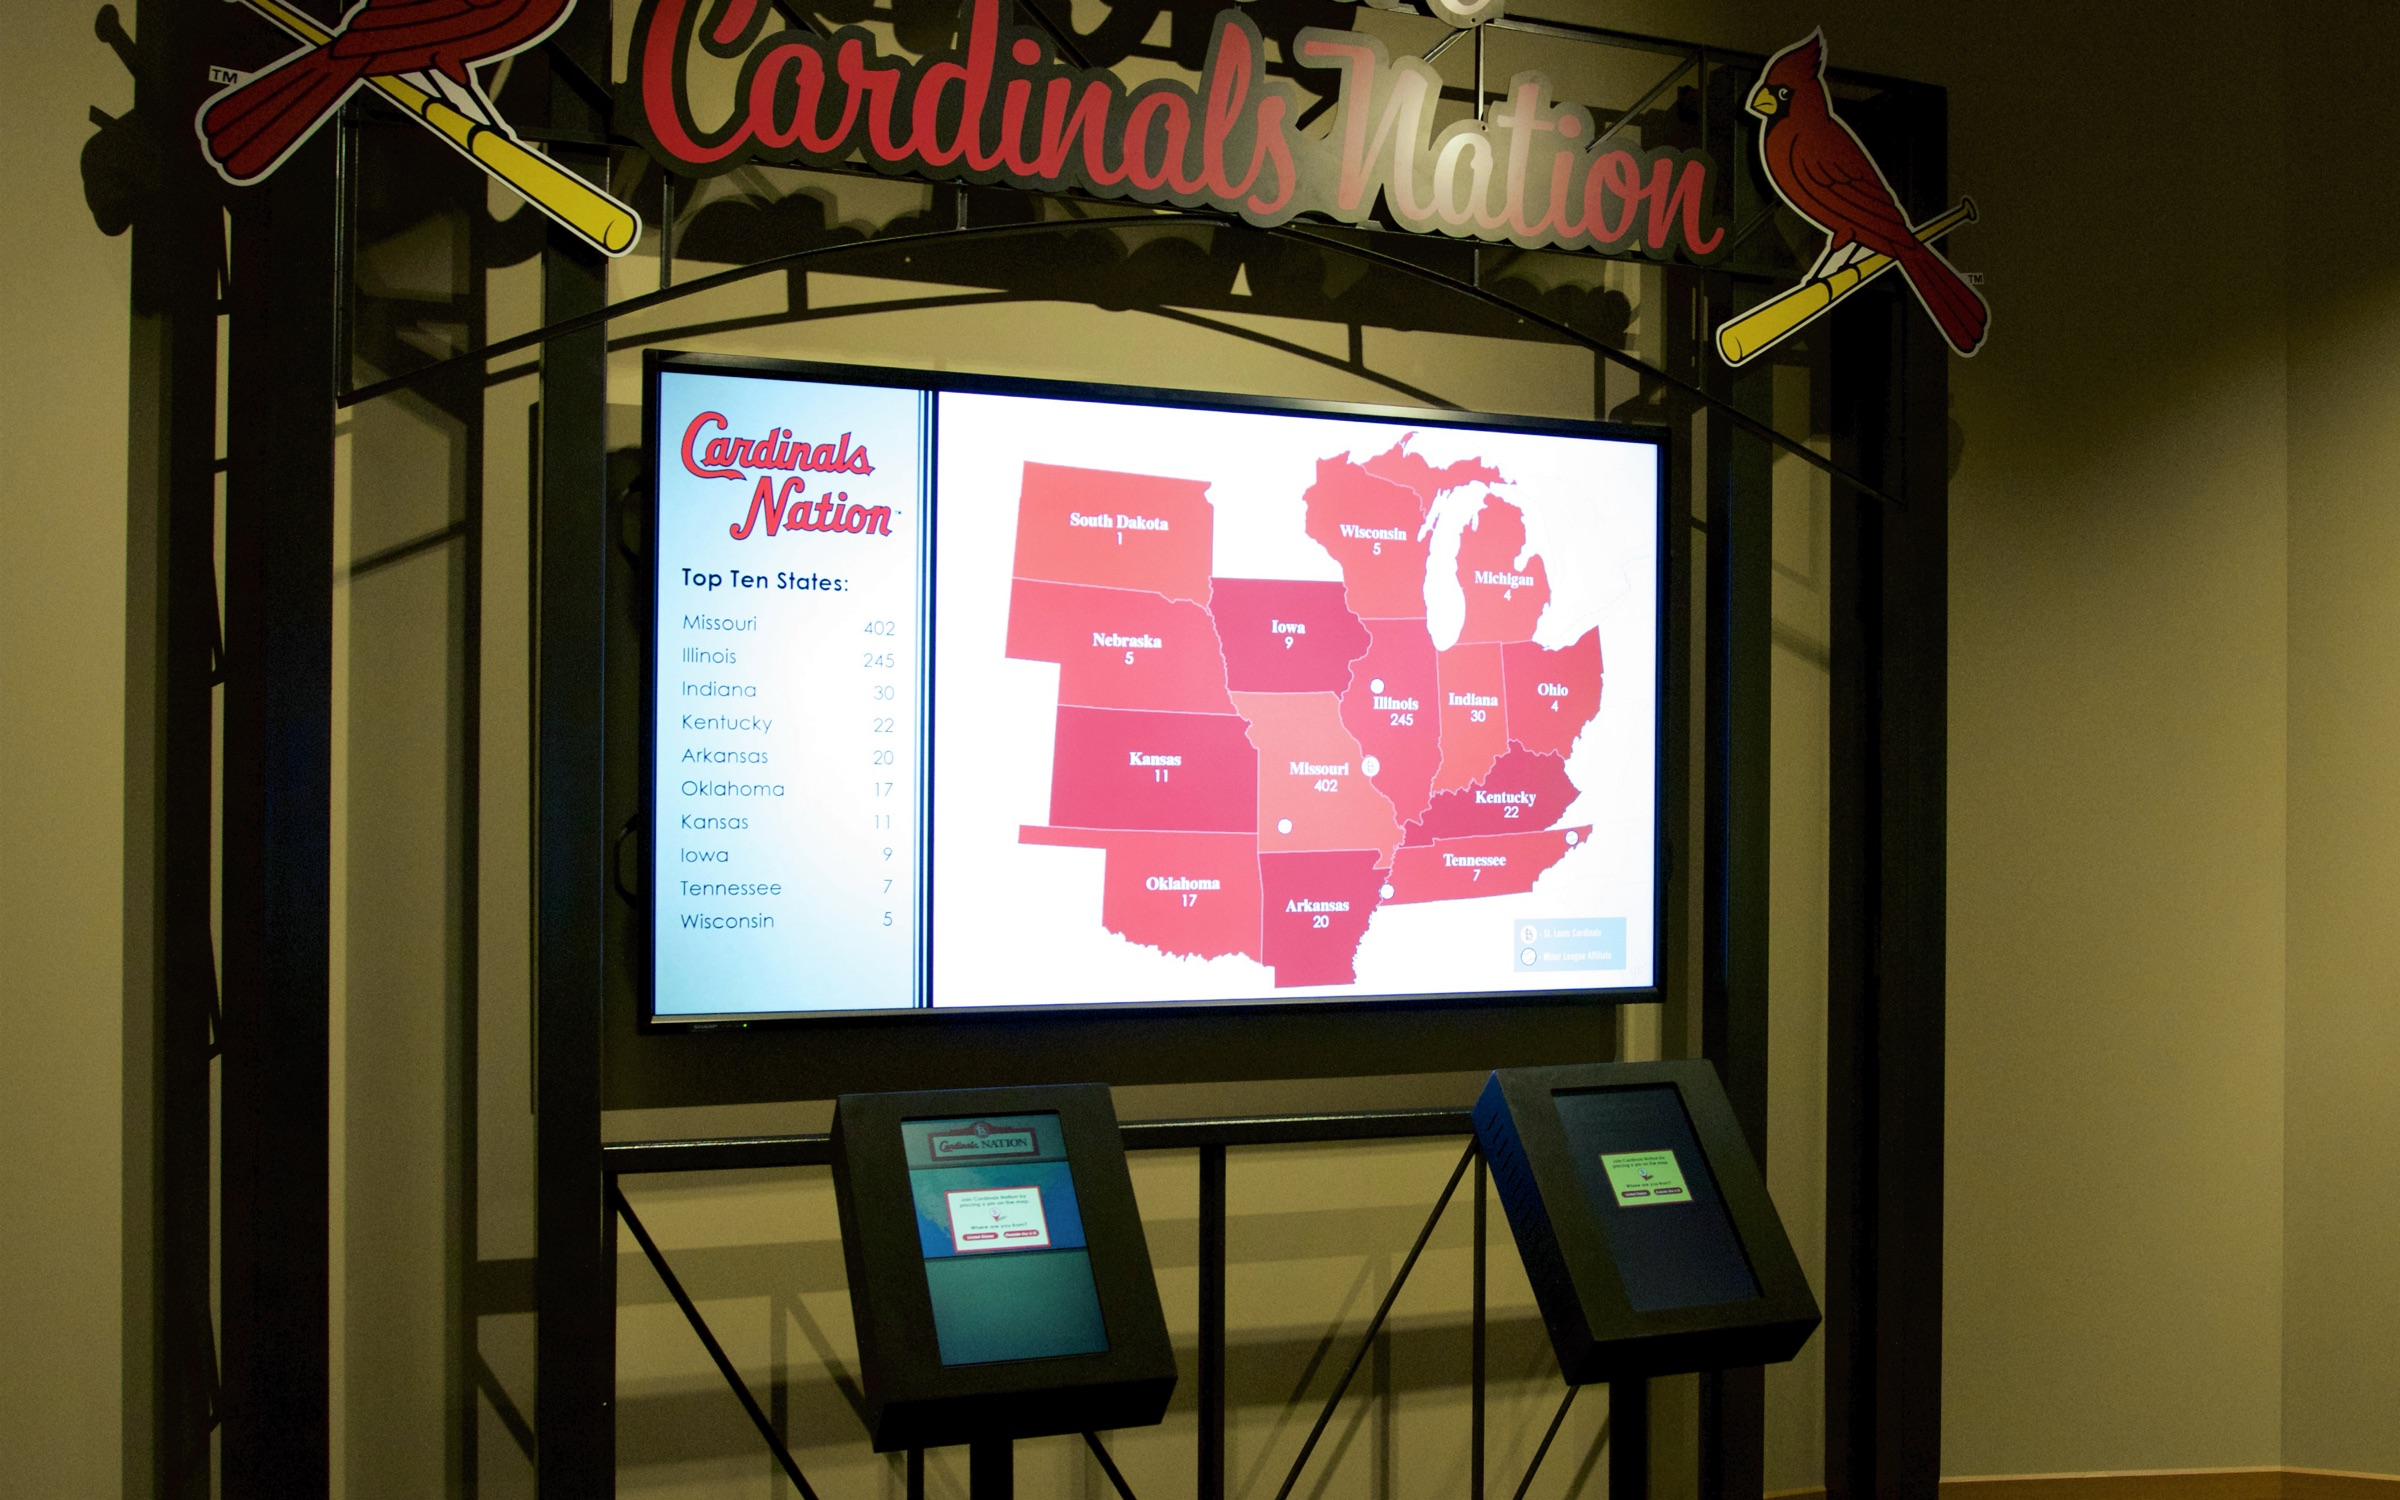 St. Louis Cardinals Hall of Fame Cardnials Nationa exhibit